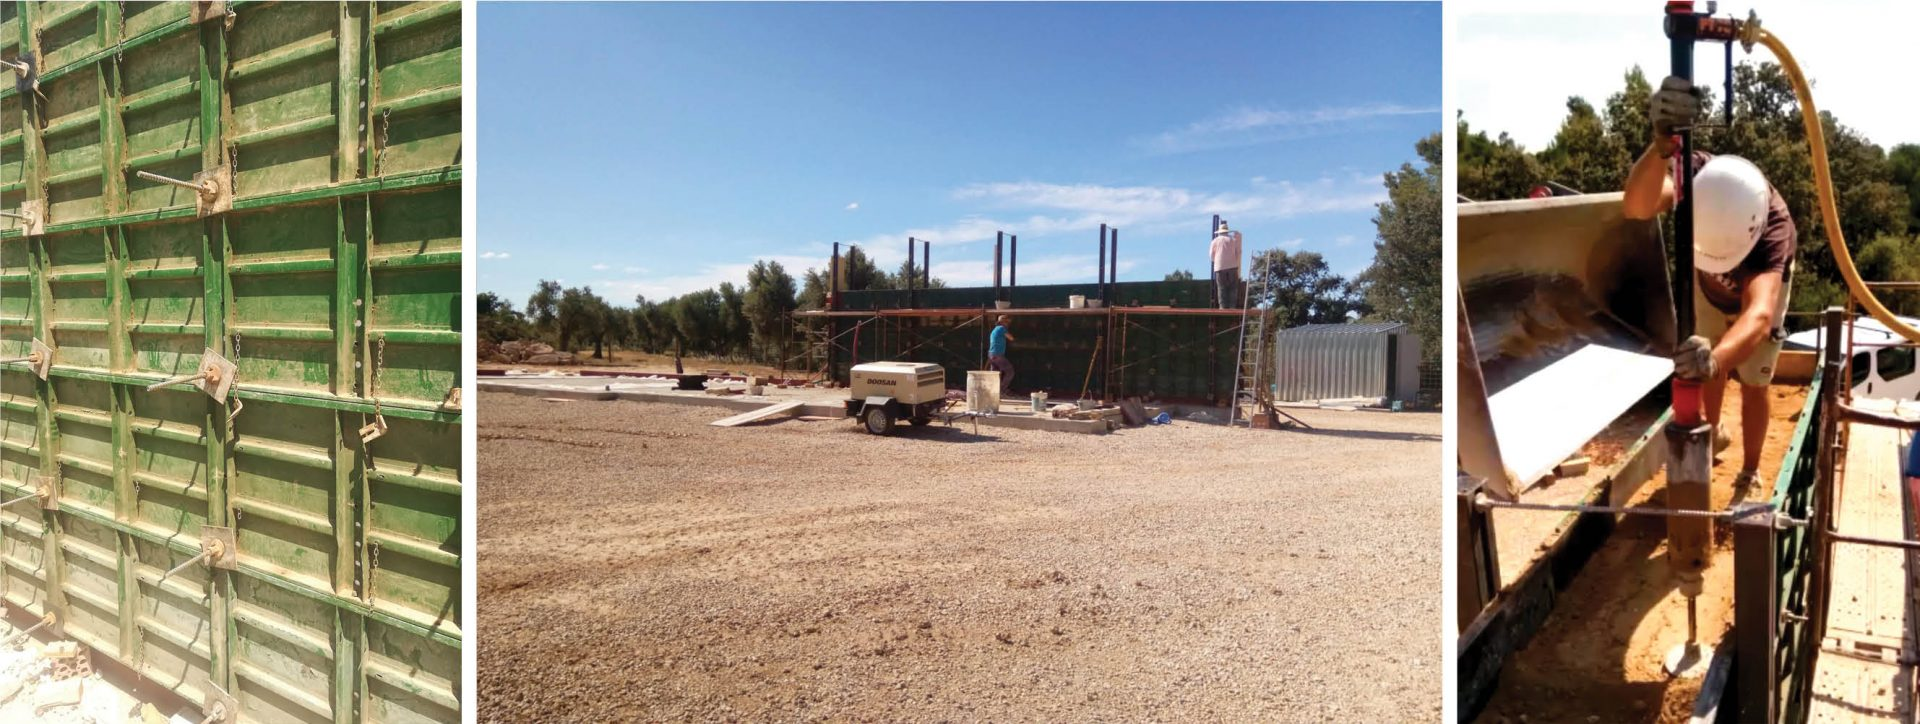 rammed-earth-wall-under-construction-zest-architecture